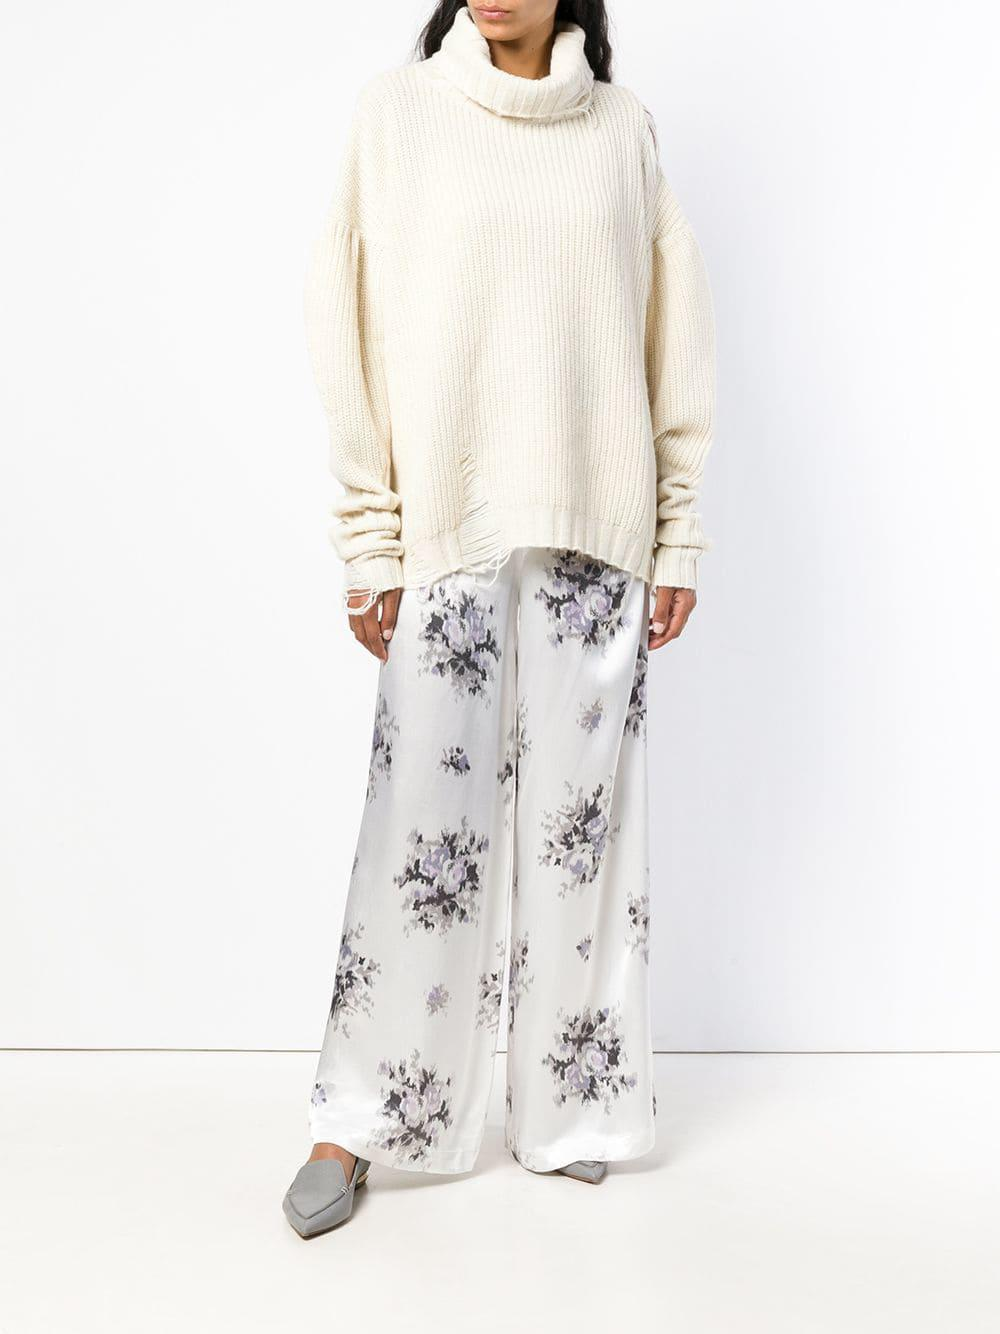 5586bd68c18 Ganni Floral Print Trousers in White - Lyst